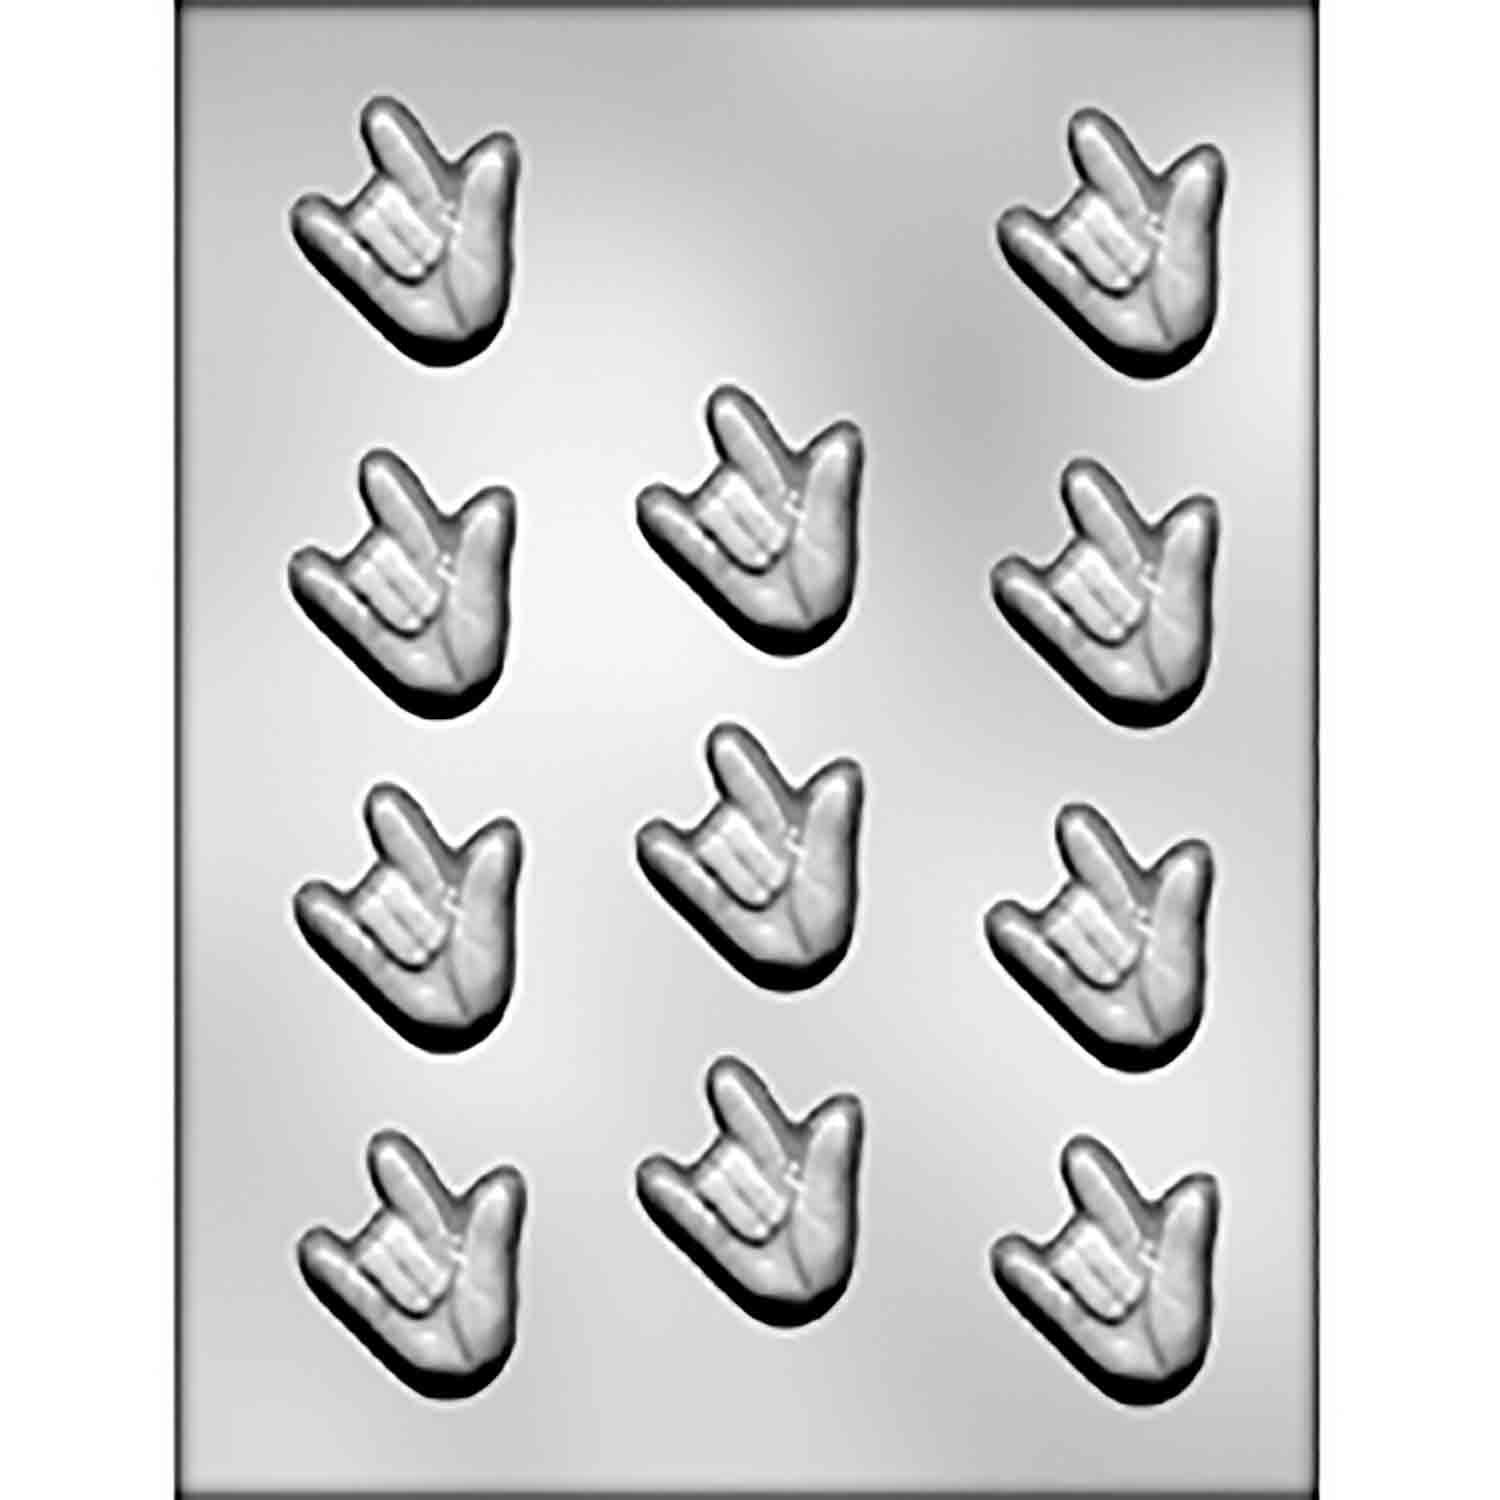 Bite Size I Love You Sign Language Candy Mold